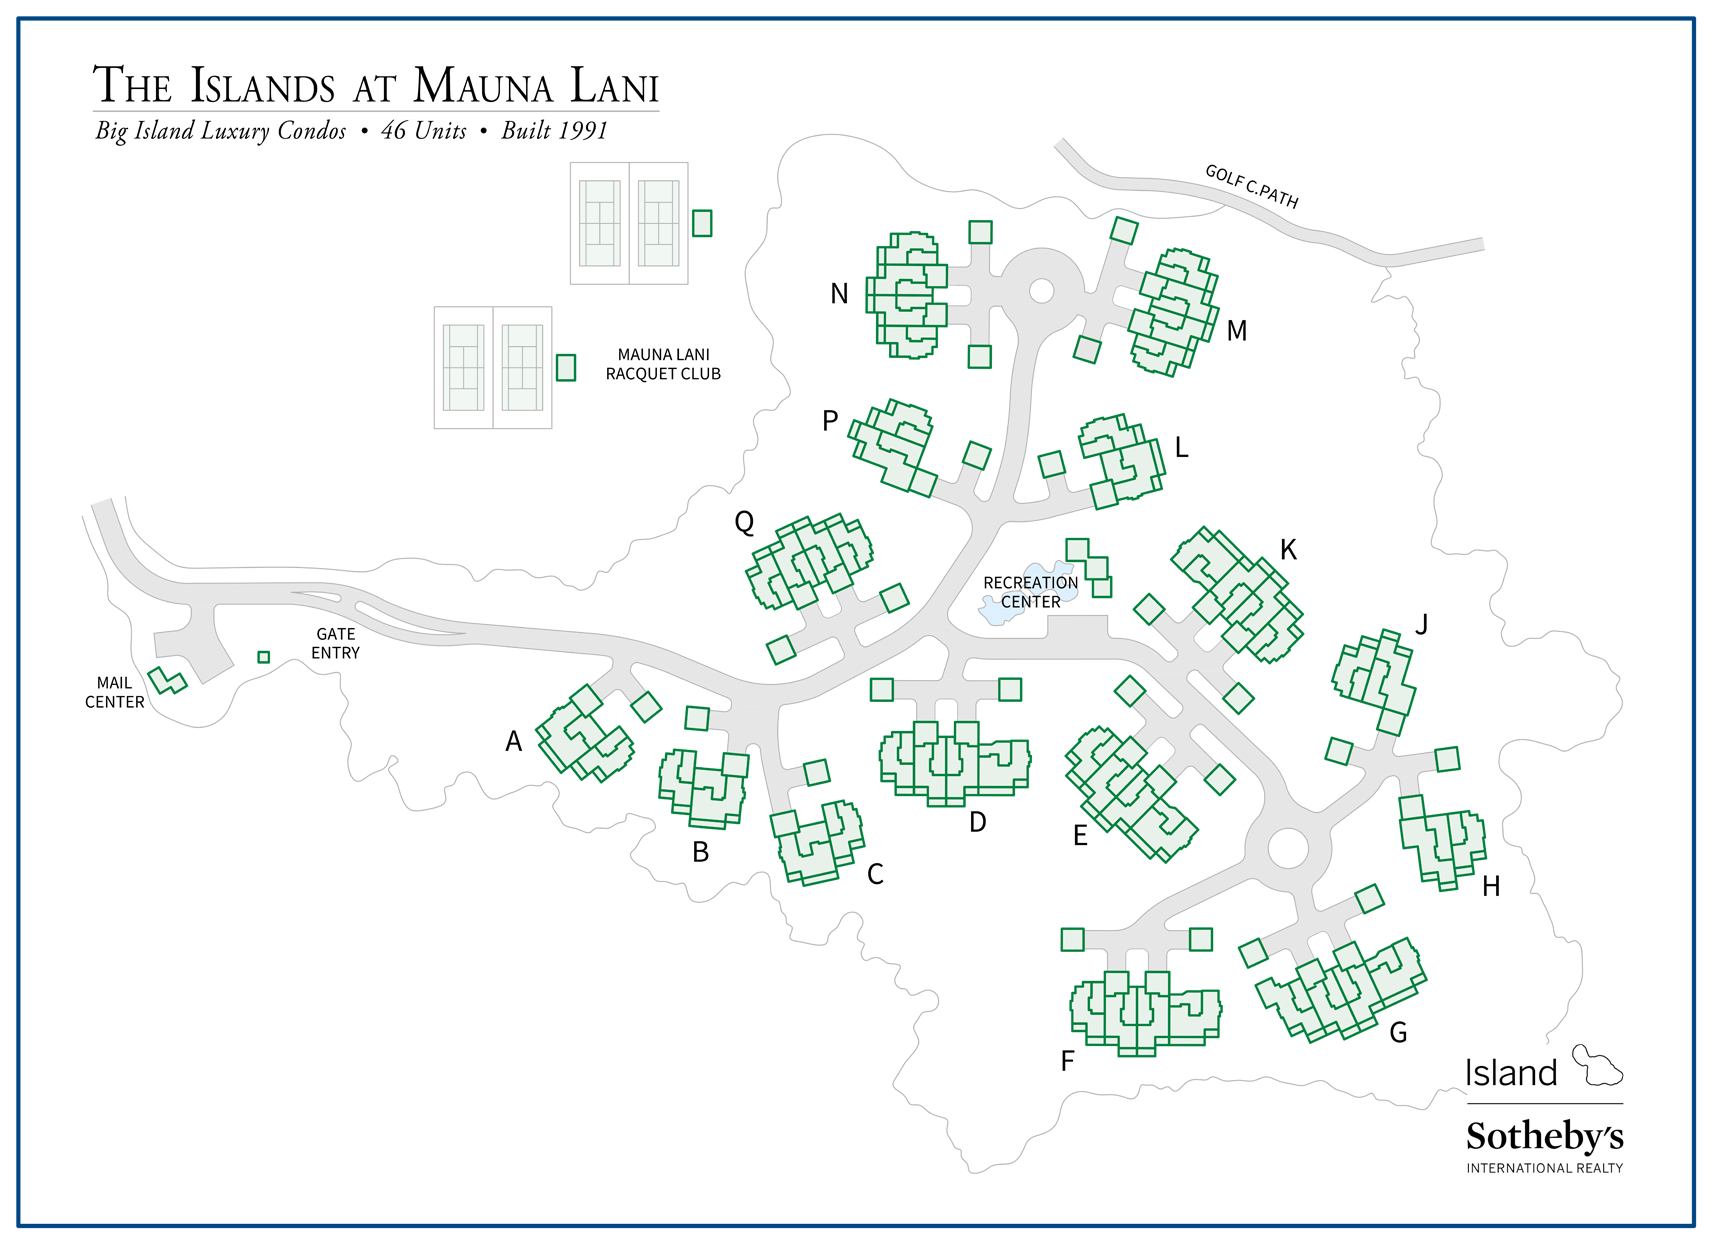 the islands at mauna lani map